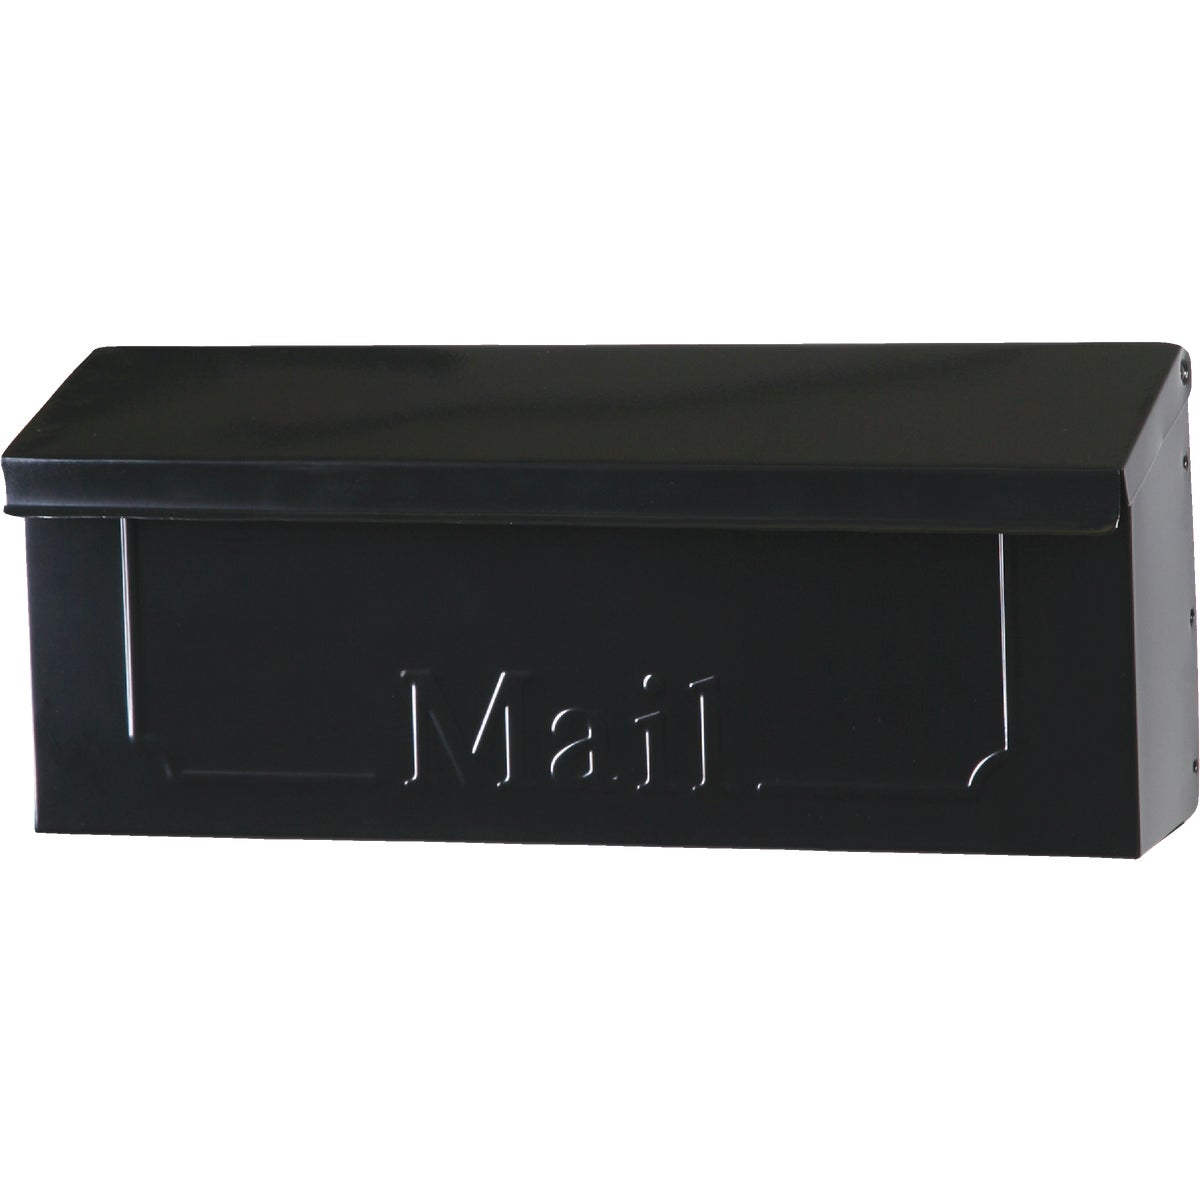 BLK HORIZ WALL MAILBOX - THHB0000 by Solar Group